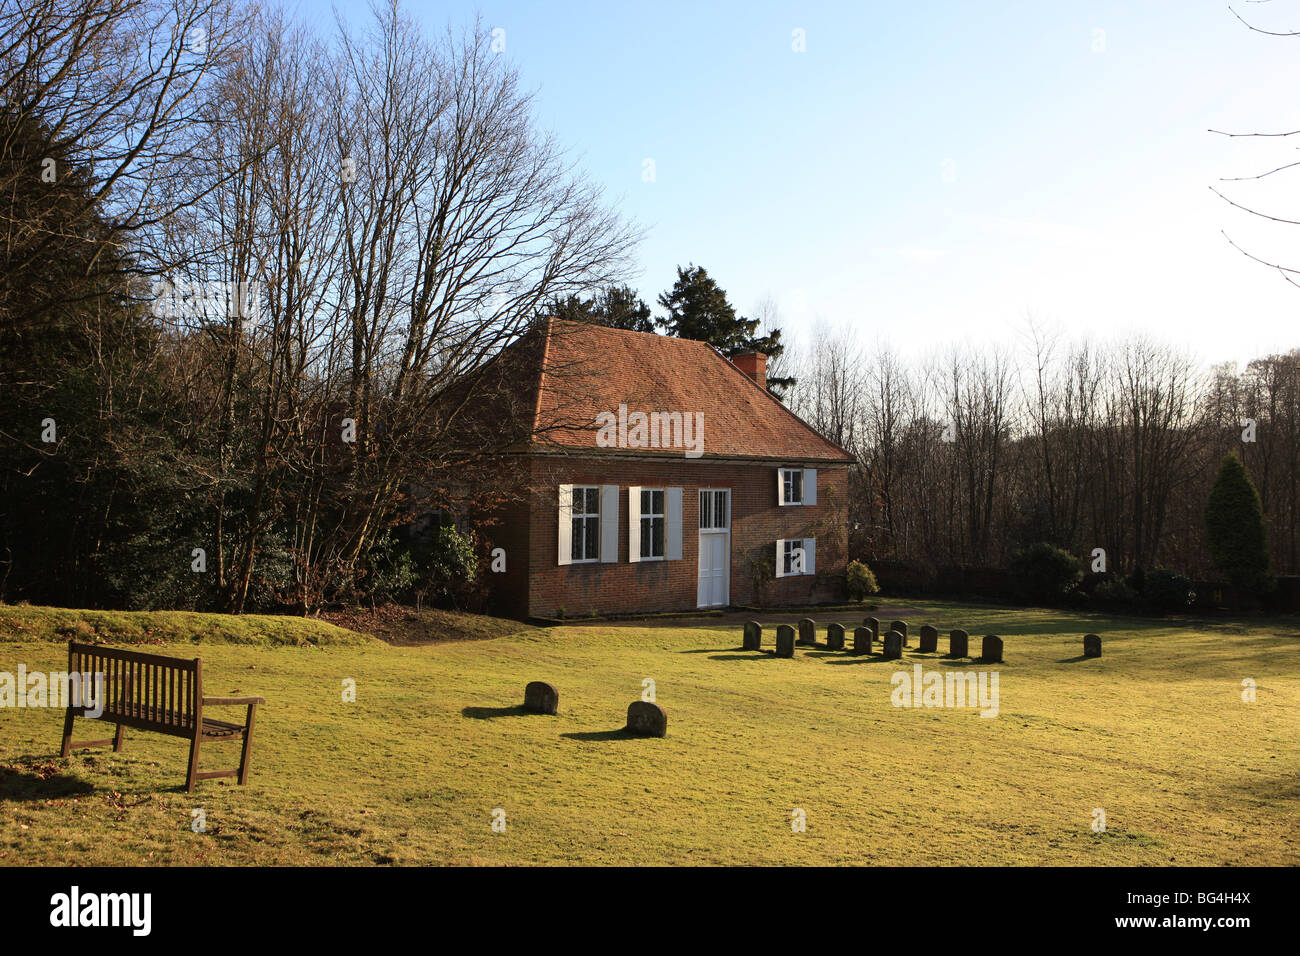 The Quaker Meeting House at Jordan's with the grave of William Penn the founder of Pennsylvania,America Stock Photo